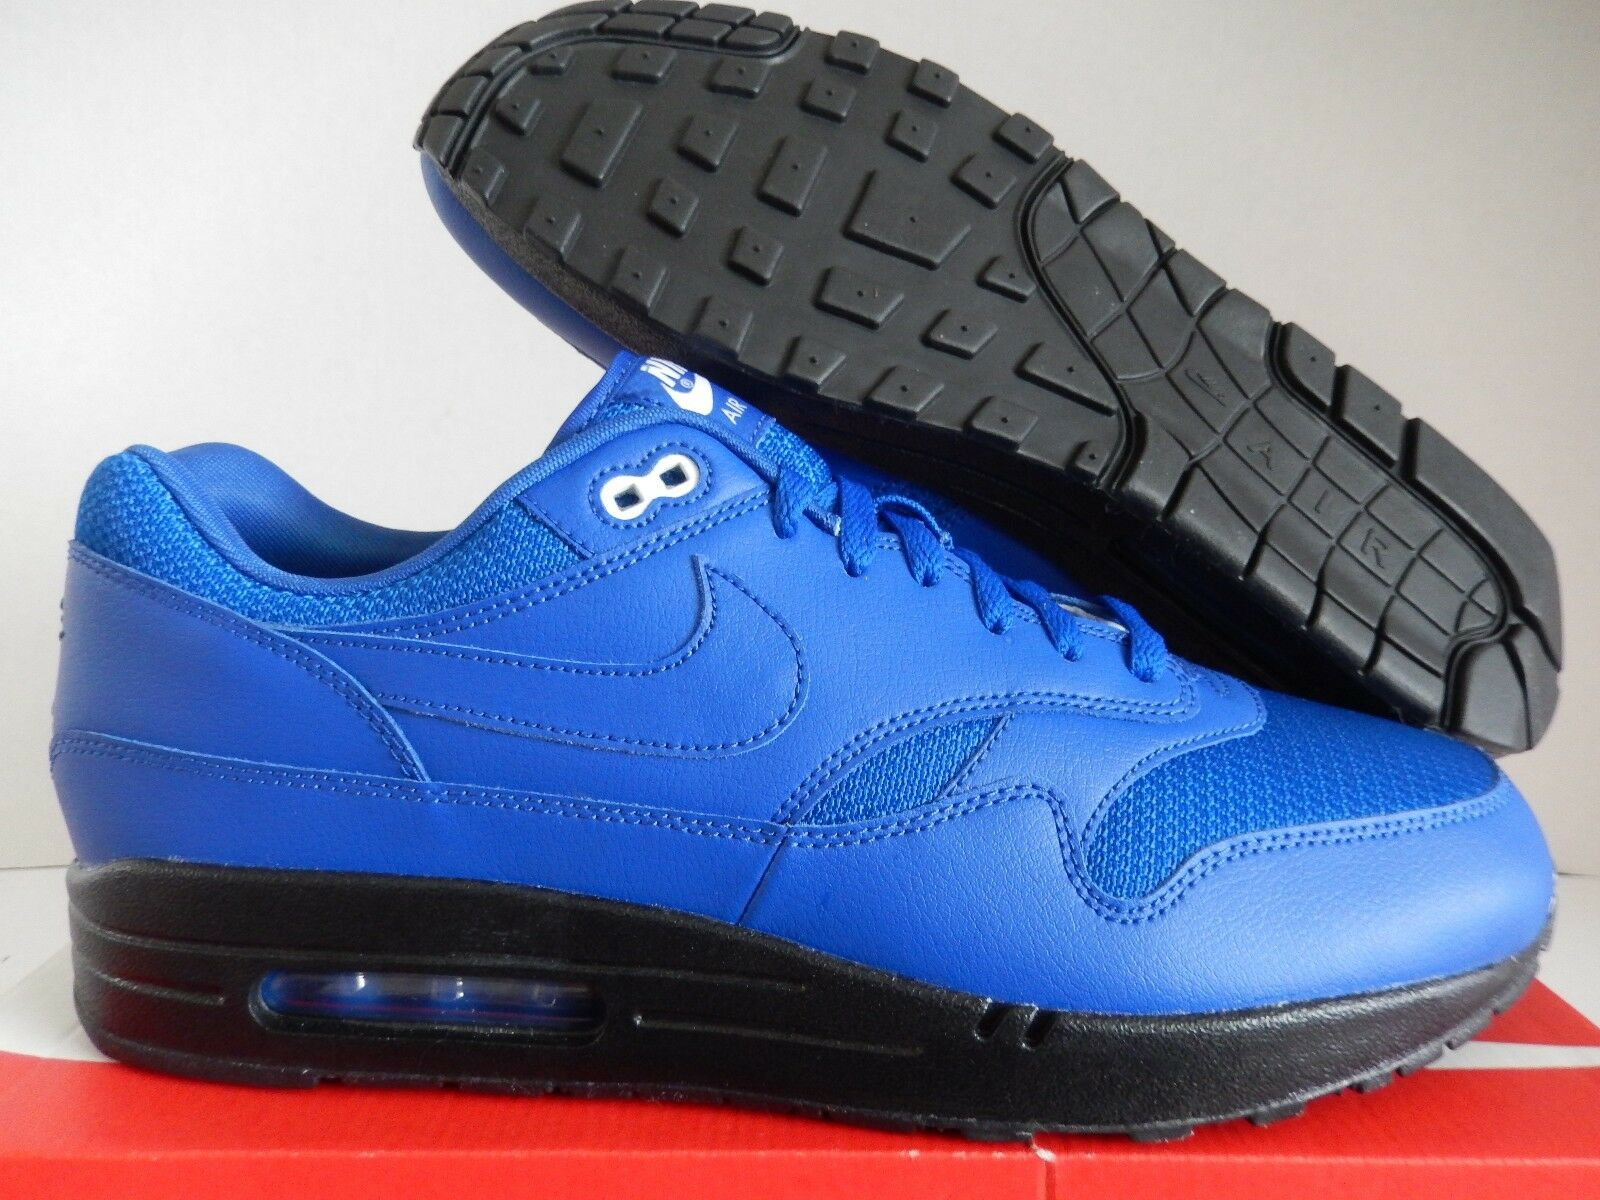 NIKE AIR MAX 1 ID HYPER BLUE-BLACK Price reduction best-selling model of the brand